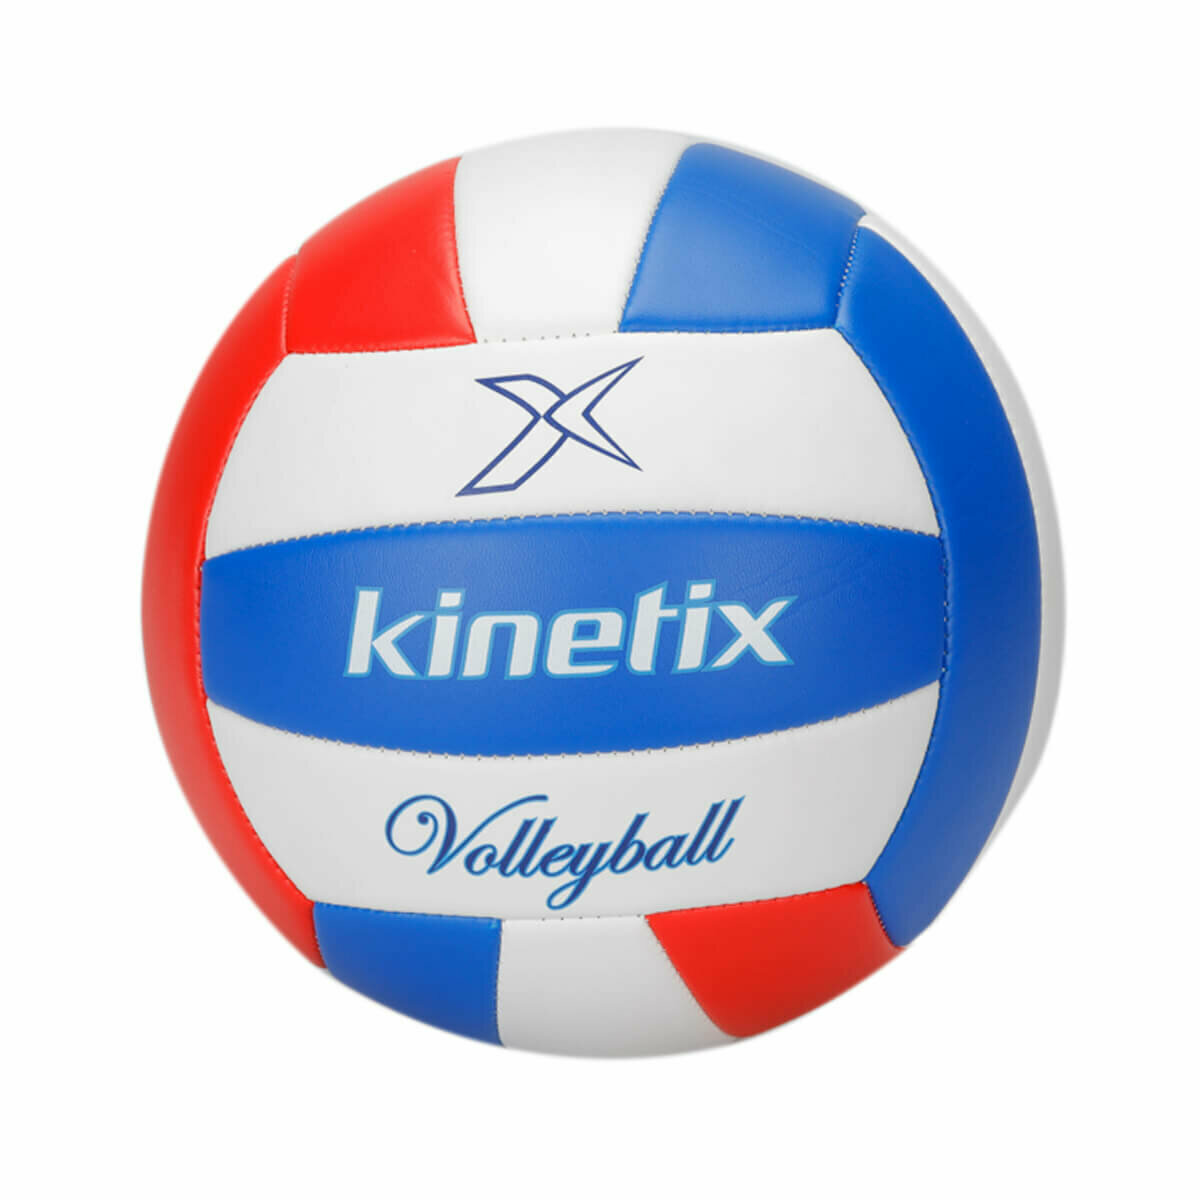 FLO VOLEYBALL Multicolour Unisex Volleyball Ball KINETIX